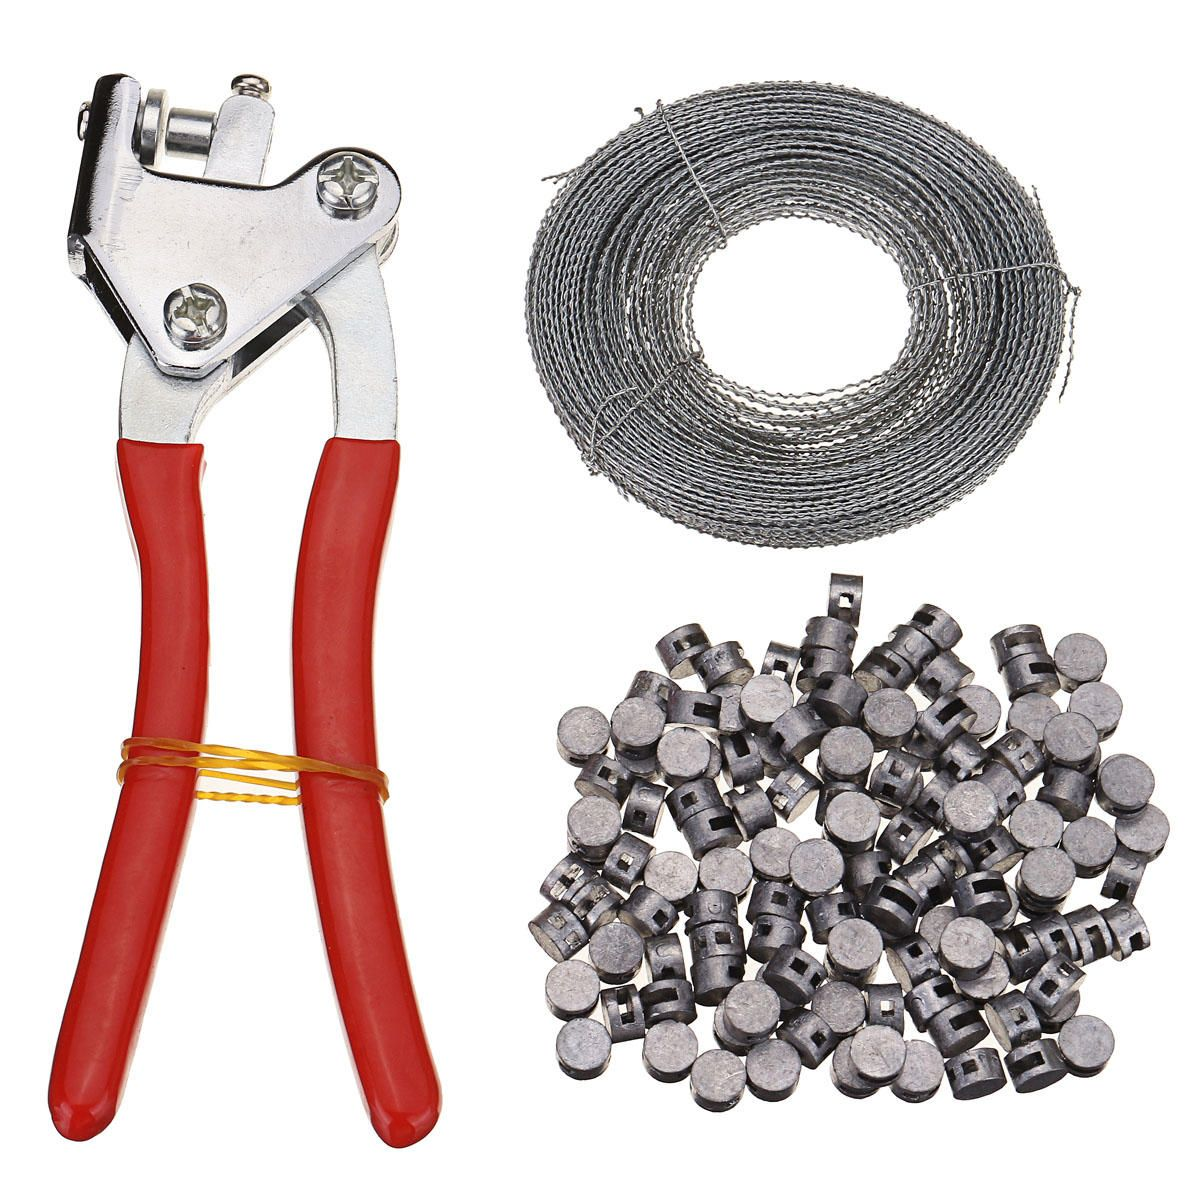 Lead Seal Ring Piler Meter Seal Press Security with 15 Yards Iron ...